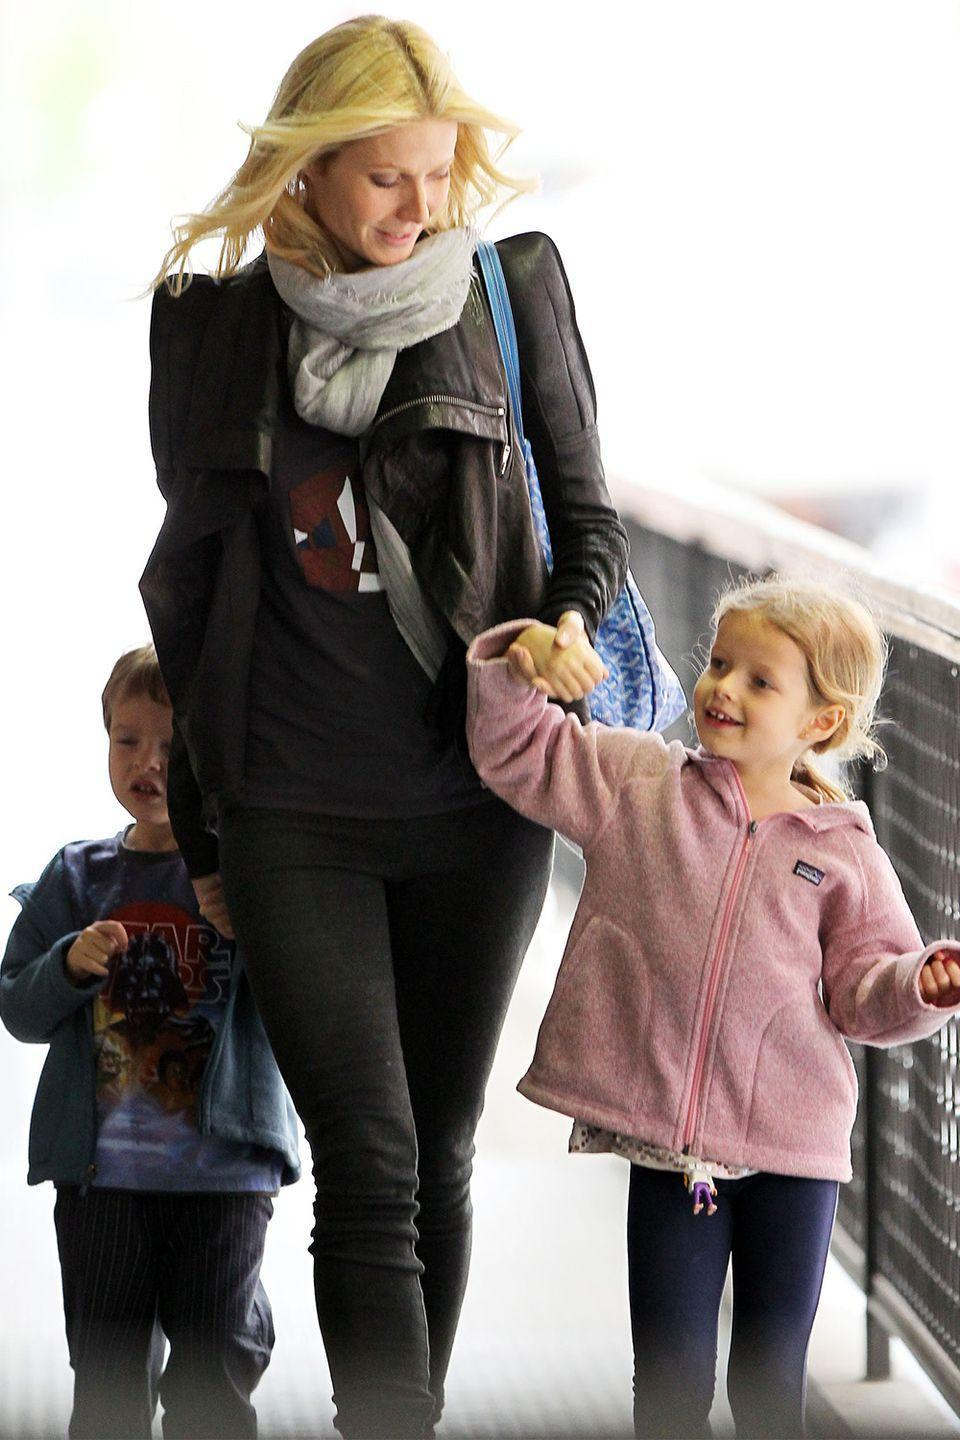 """<p>Apple Martin is the mini-me of her mother, actress Gwyneth Paltrow. <a href=""""https://www.instagram.com/p/BoMiWcGnmkU/"""" rel=""""nofollow noopener"""" target=""""_blank"""" data-ylk=""""slk:Recent Instagram posts"""" class=""""link rapid-noclick-resp"""">Recent Instagram posts</a> show the two looking even more alike as time goes on. </p>"""